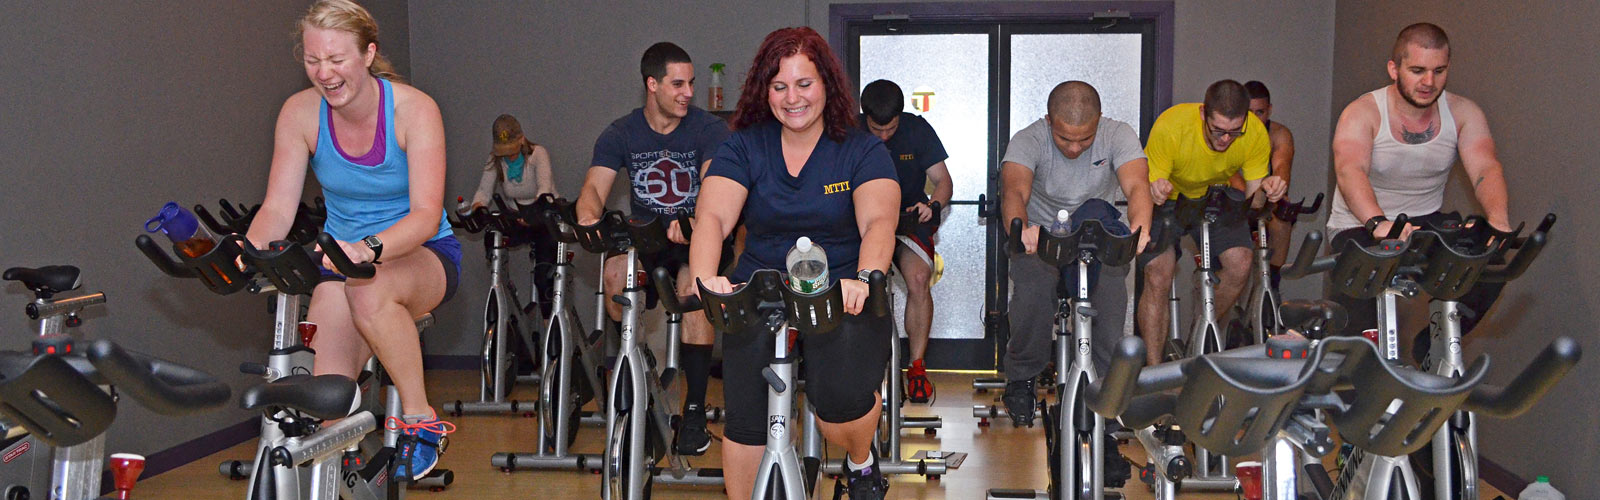 MTTI Personal Fitness Trainer students on stationery bikes during a Spin Class.